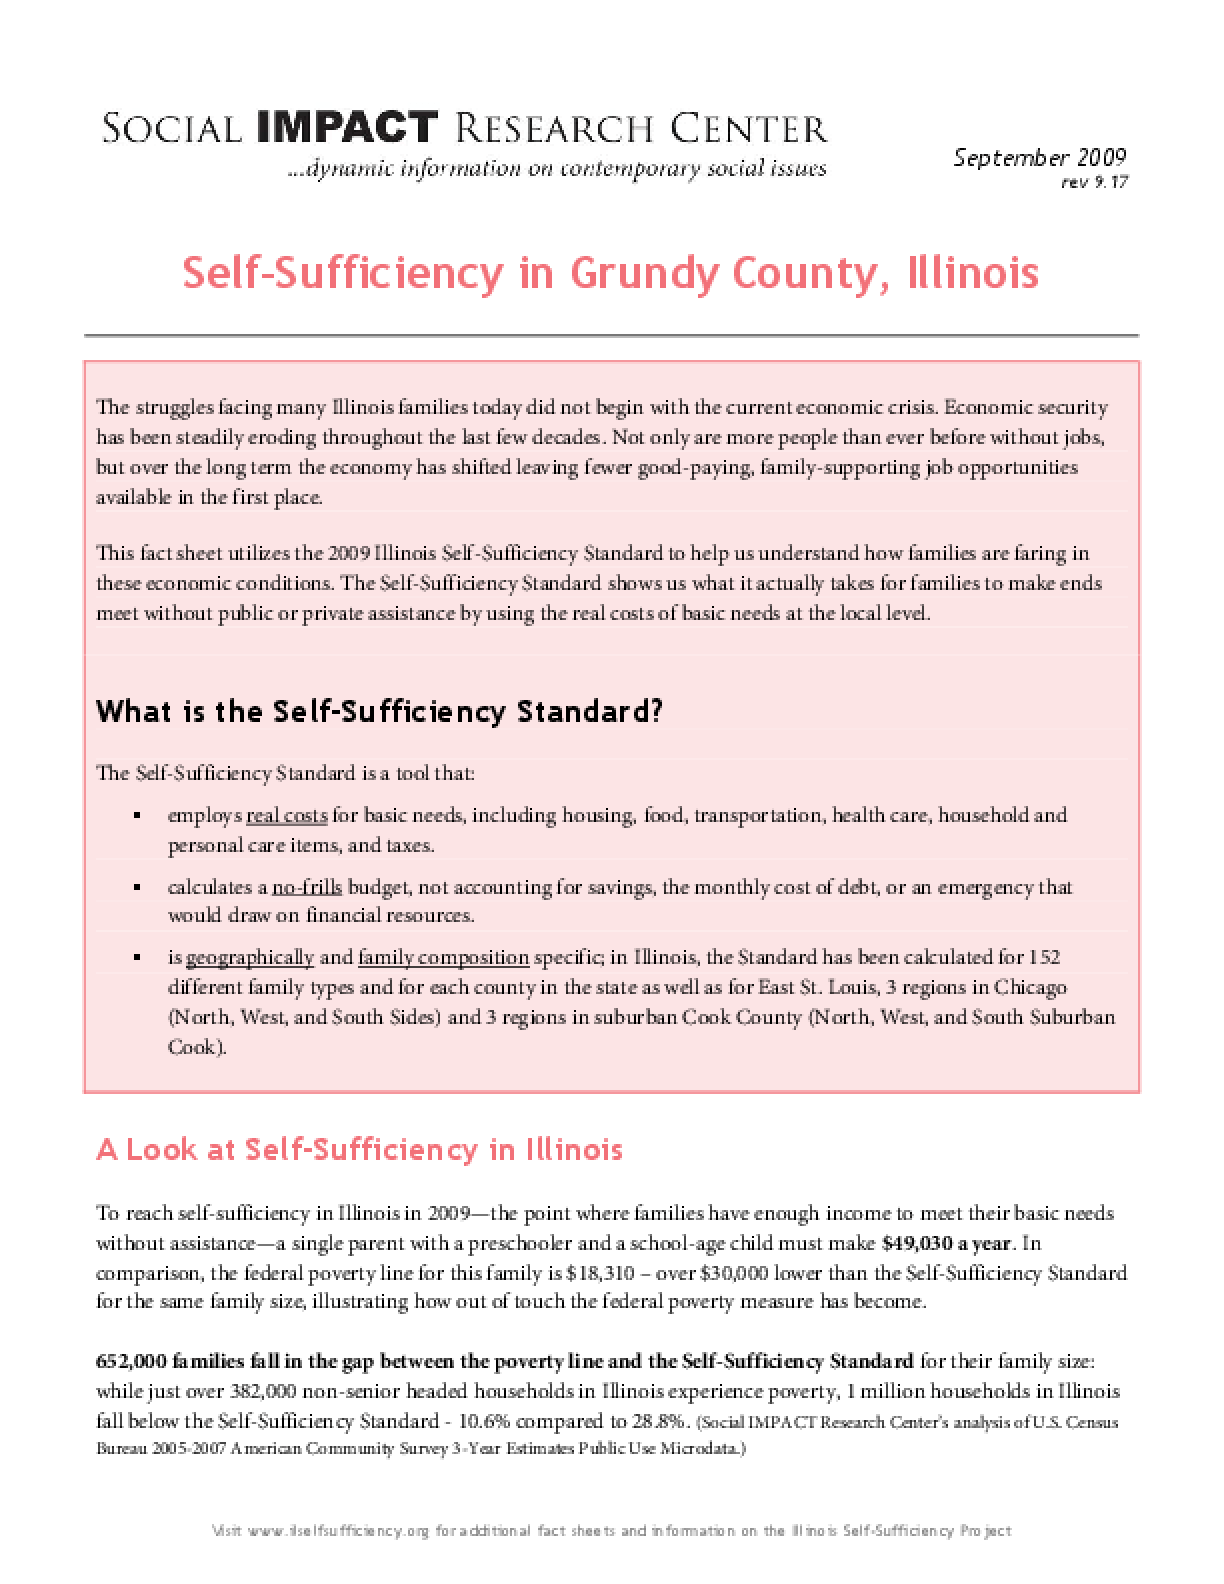 Self-Sufficiency in Grundy County, Illinois